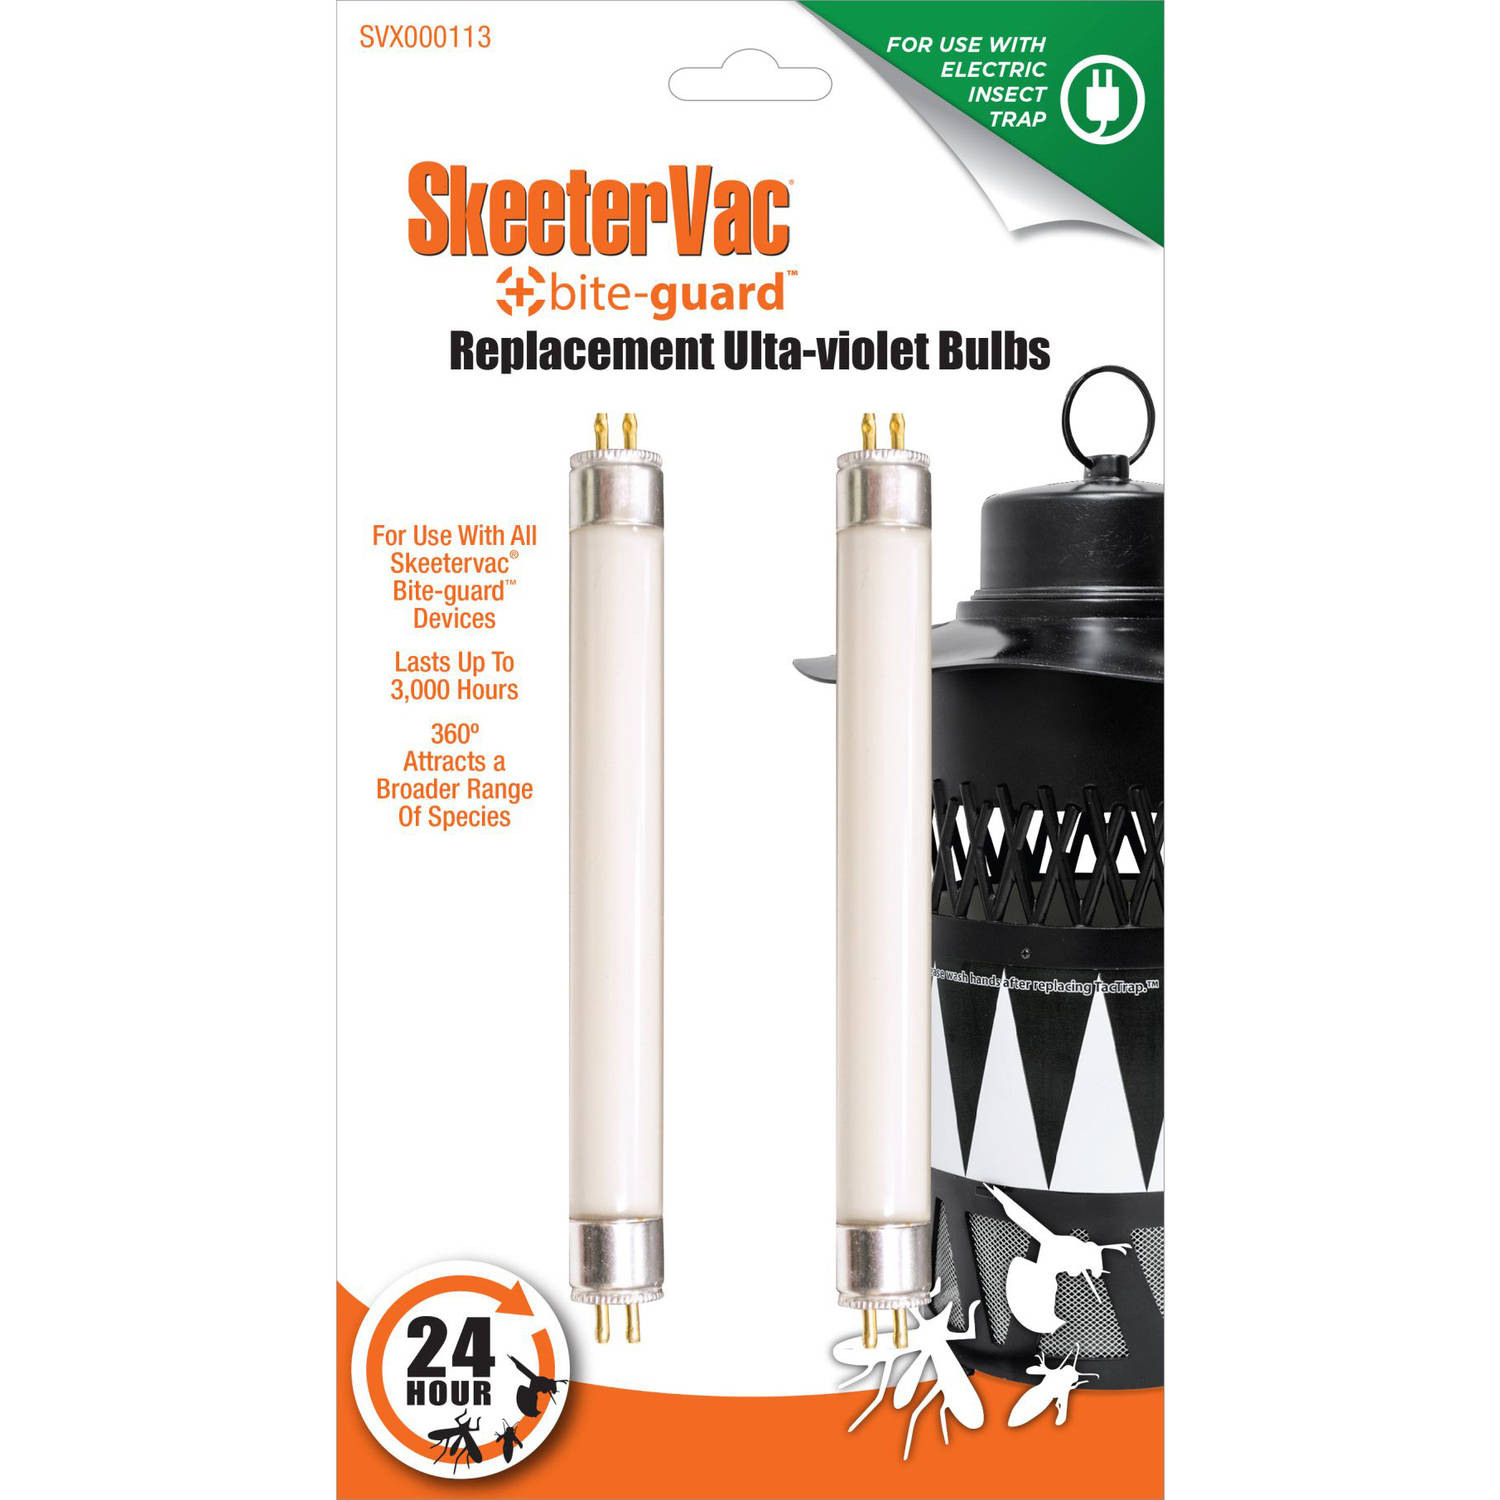 Blue Rhino SkeeterVac Bite-Guard Ultraviolet Bulbs, 2-Pack